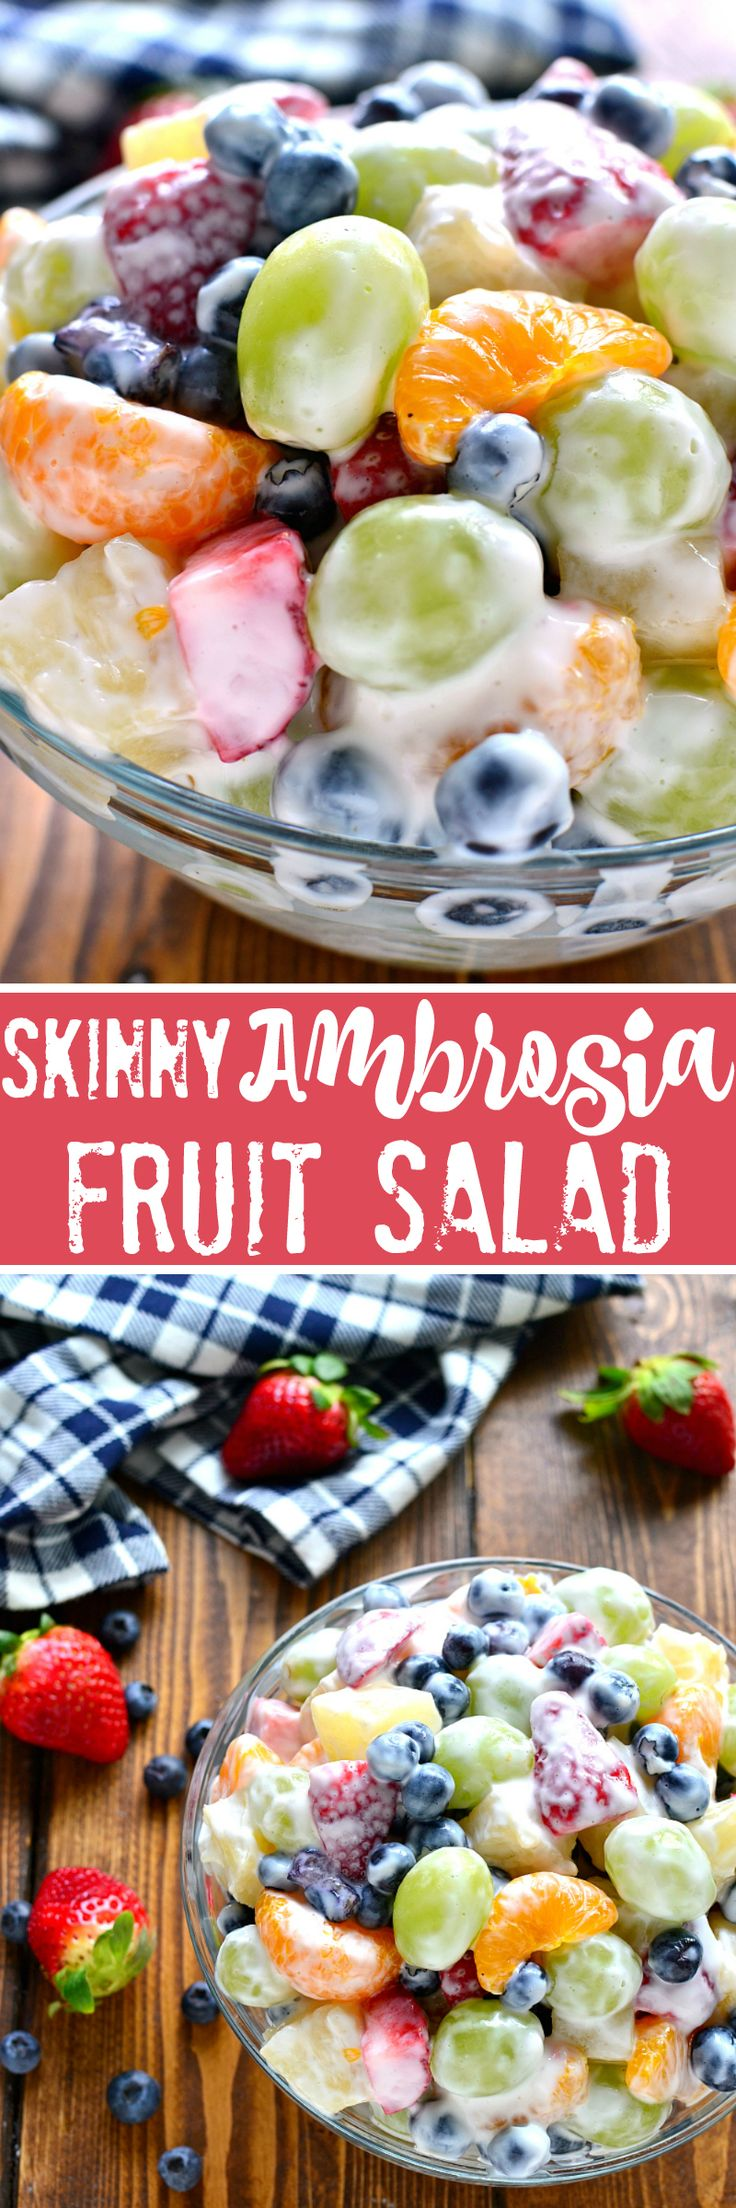 Easy fruit salad recipes with marshmallows